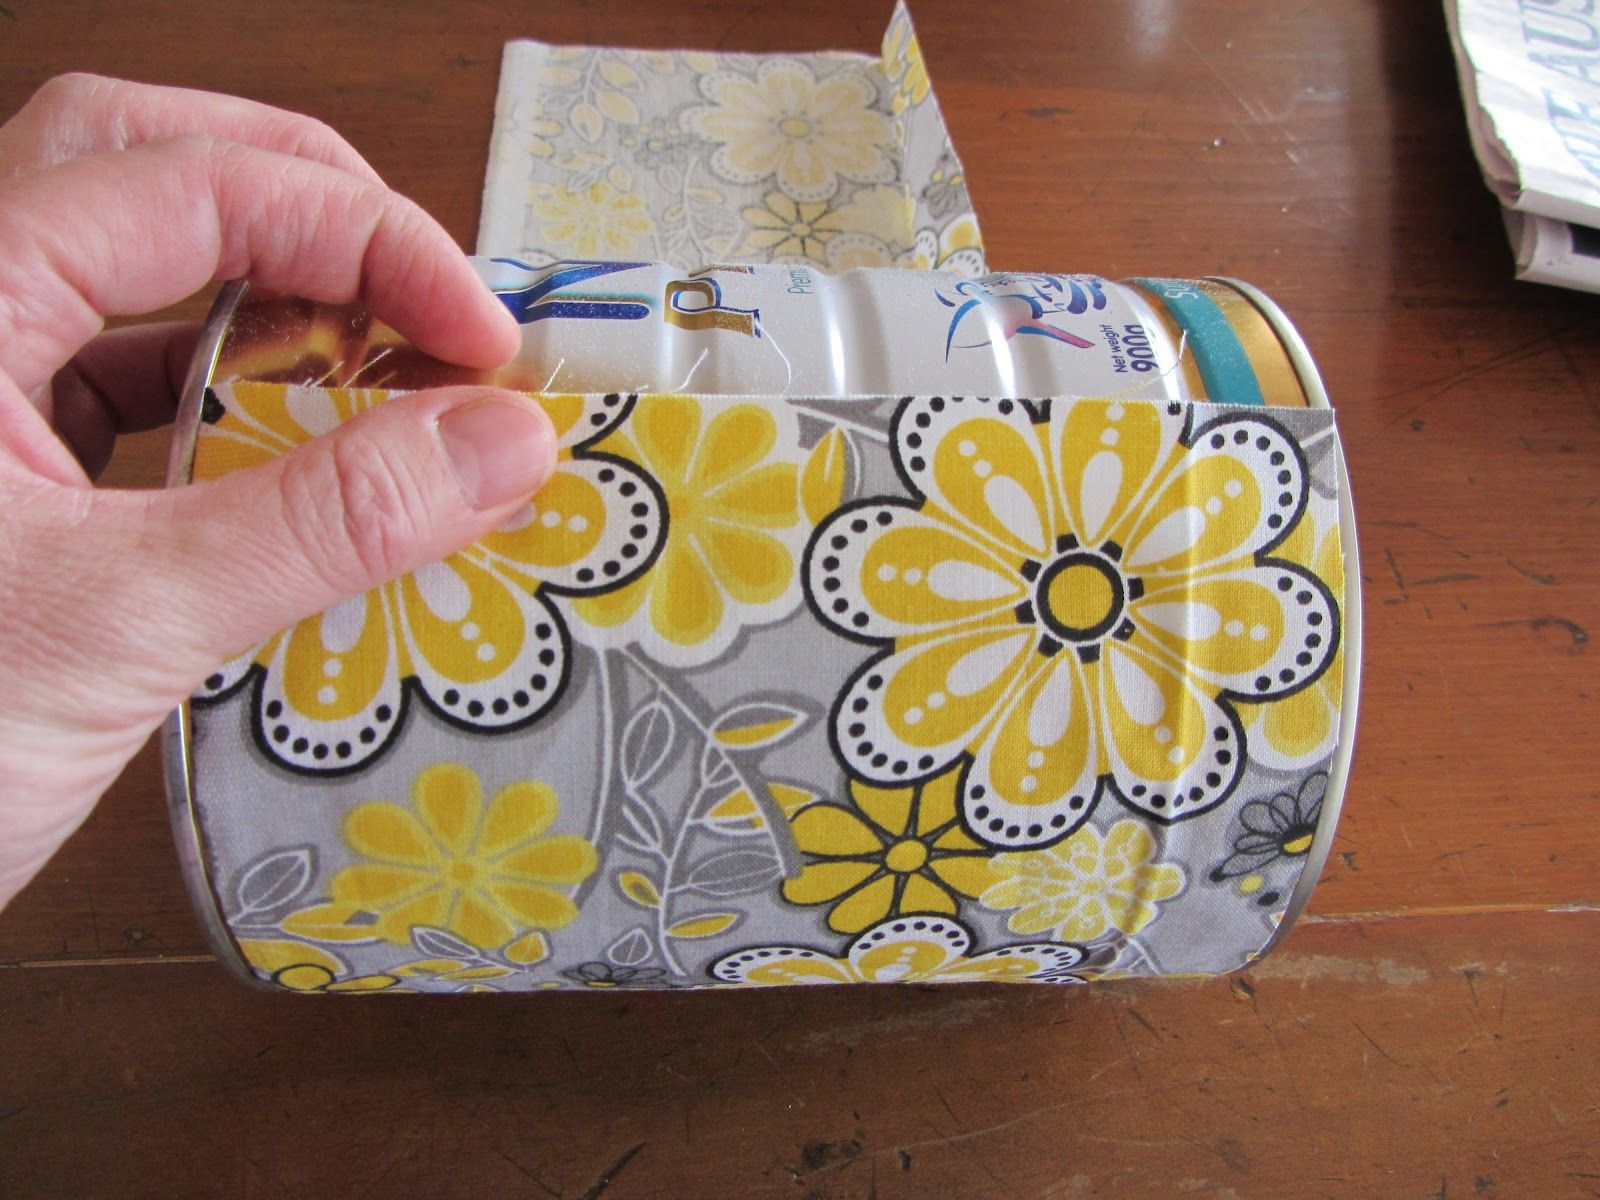 thom haus handmade: Fabric Covered Formula Tins for Children's Craft Things